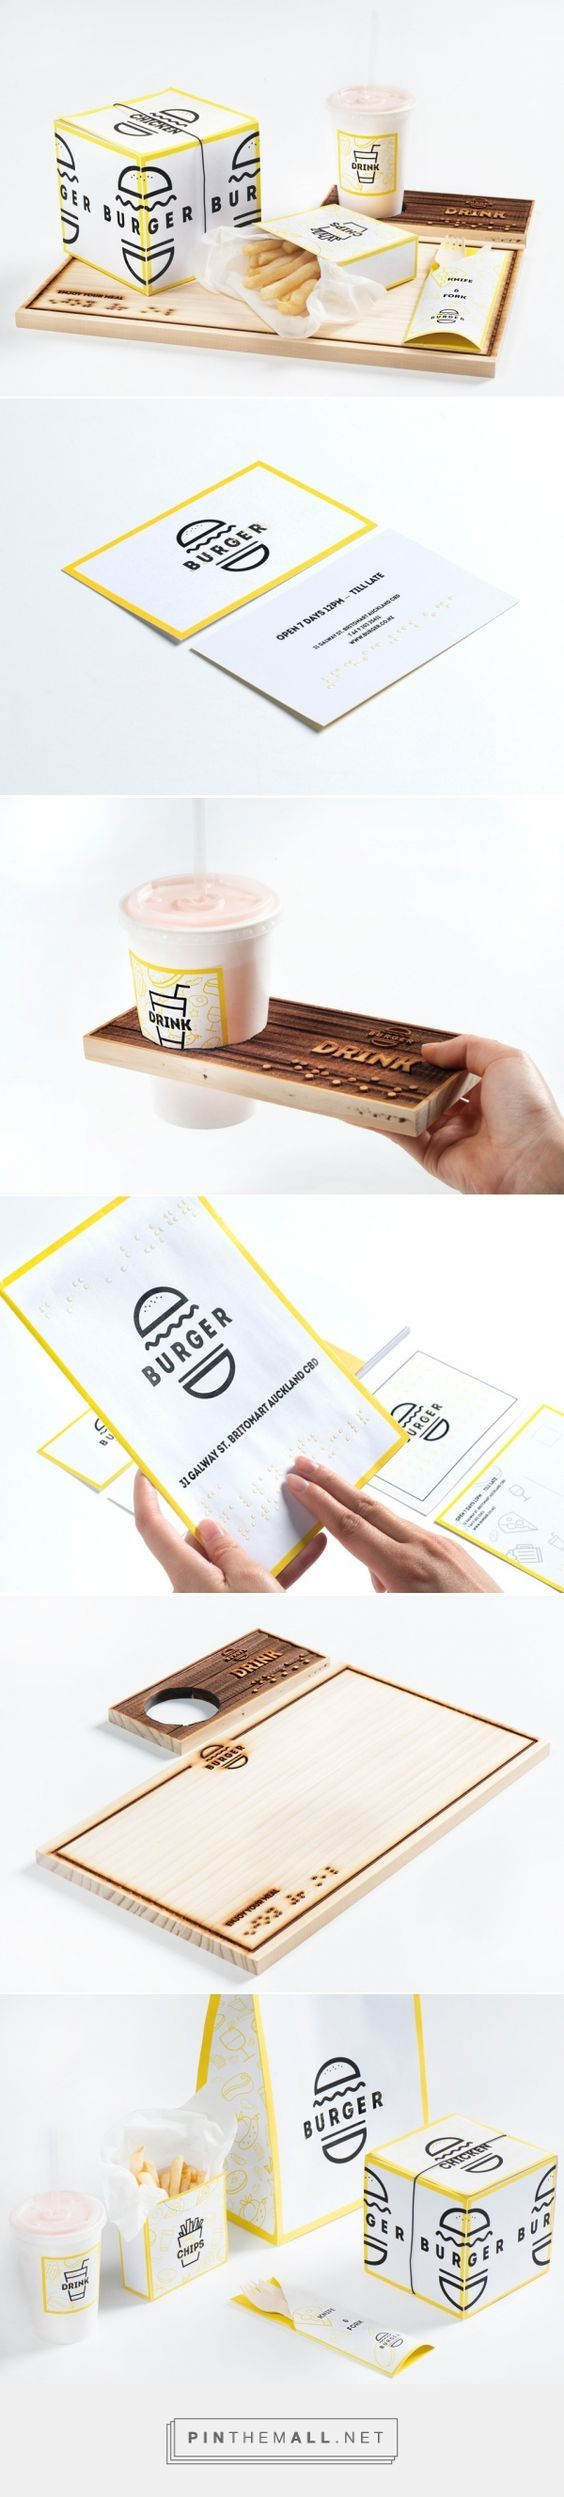 Burger Restaurant Branding | Fivestar Branding – Design and Branding Agency & Inspiration Gallery